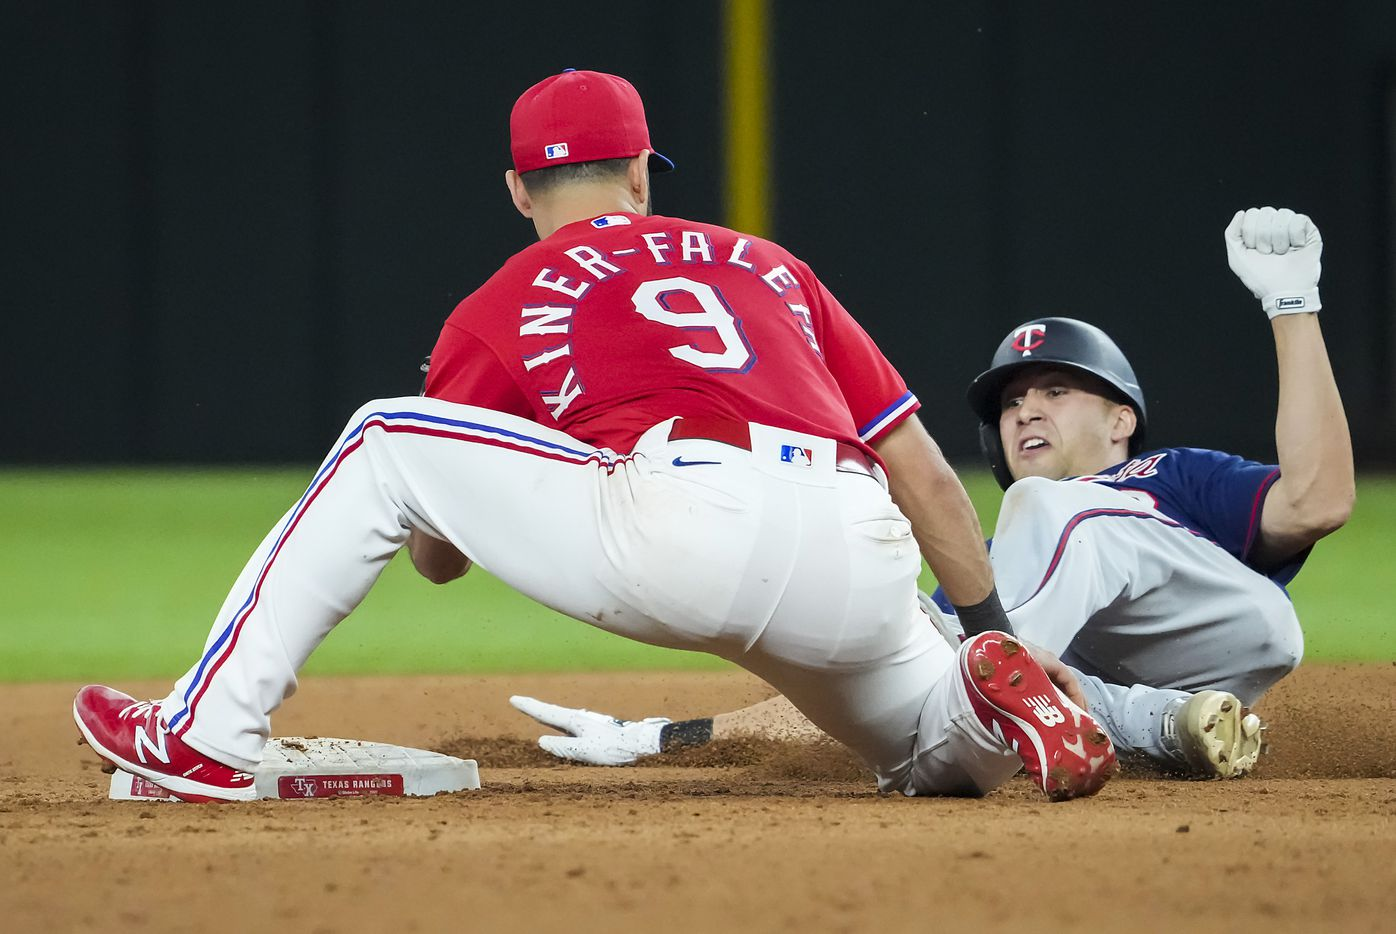 Minnesota Twins first baseman Alex Kirilloff is out at second base as Texas Rangers shortstop Isiah Kiner-Falefa waits with the tag during the ninth inning at Globe Life Field on Friday, June 18, 2021.